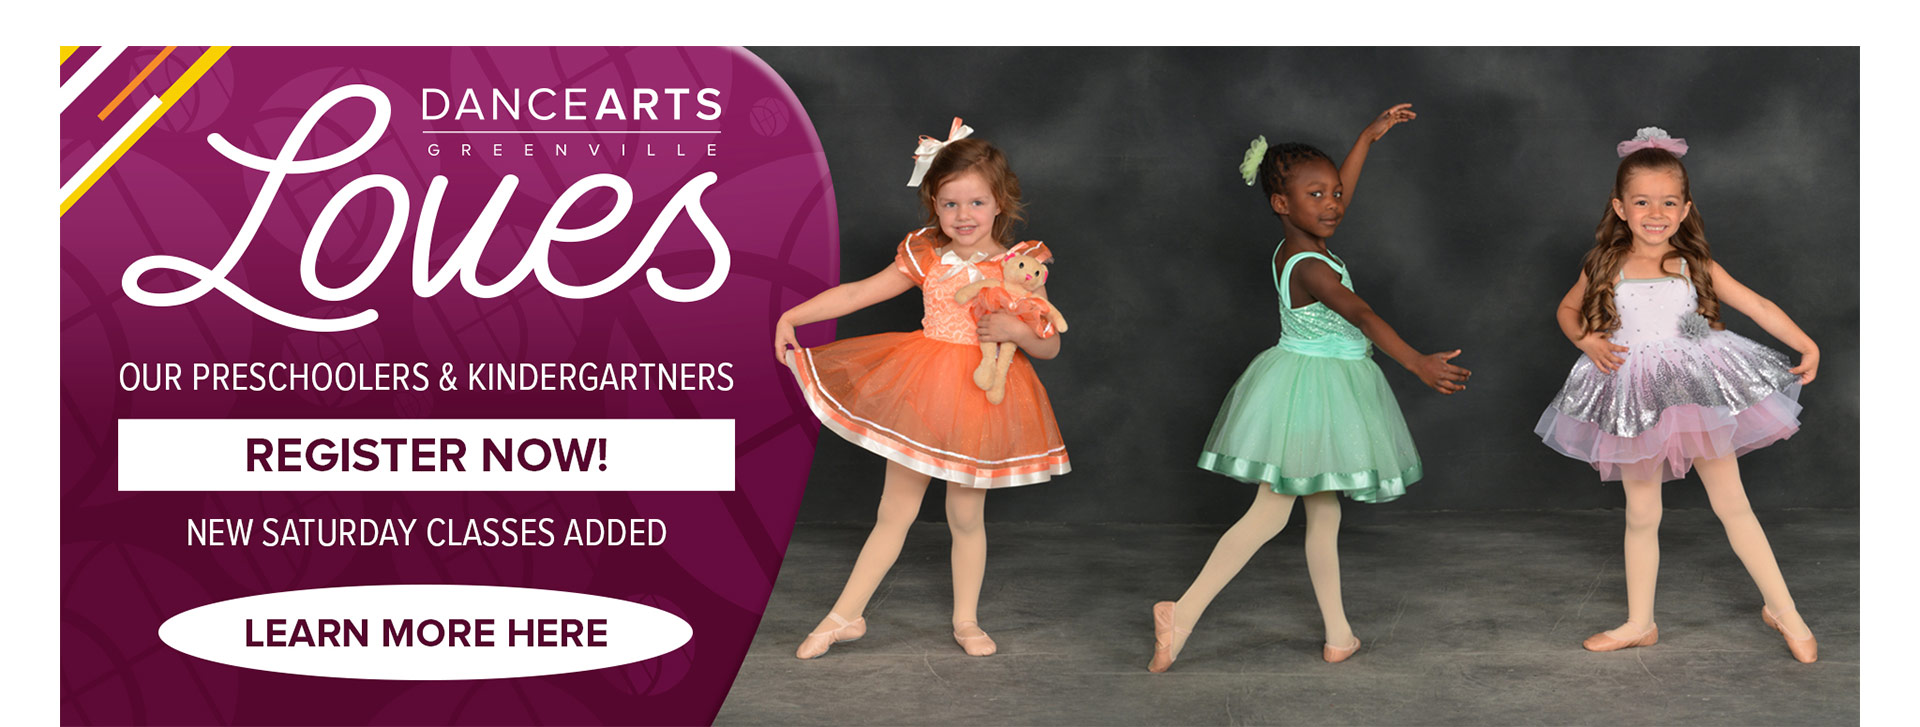 DanceArts-Preschool-Kindergarden-Slider22-1